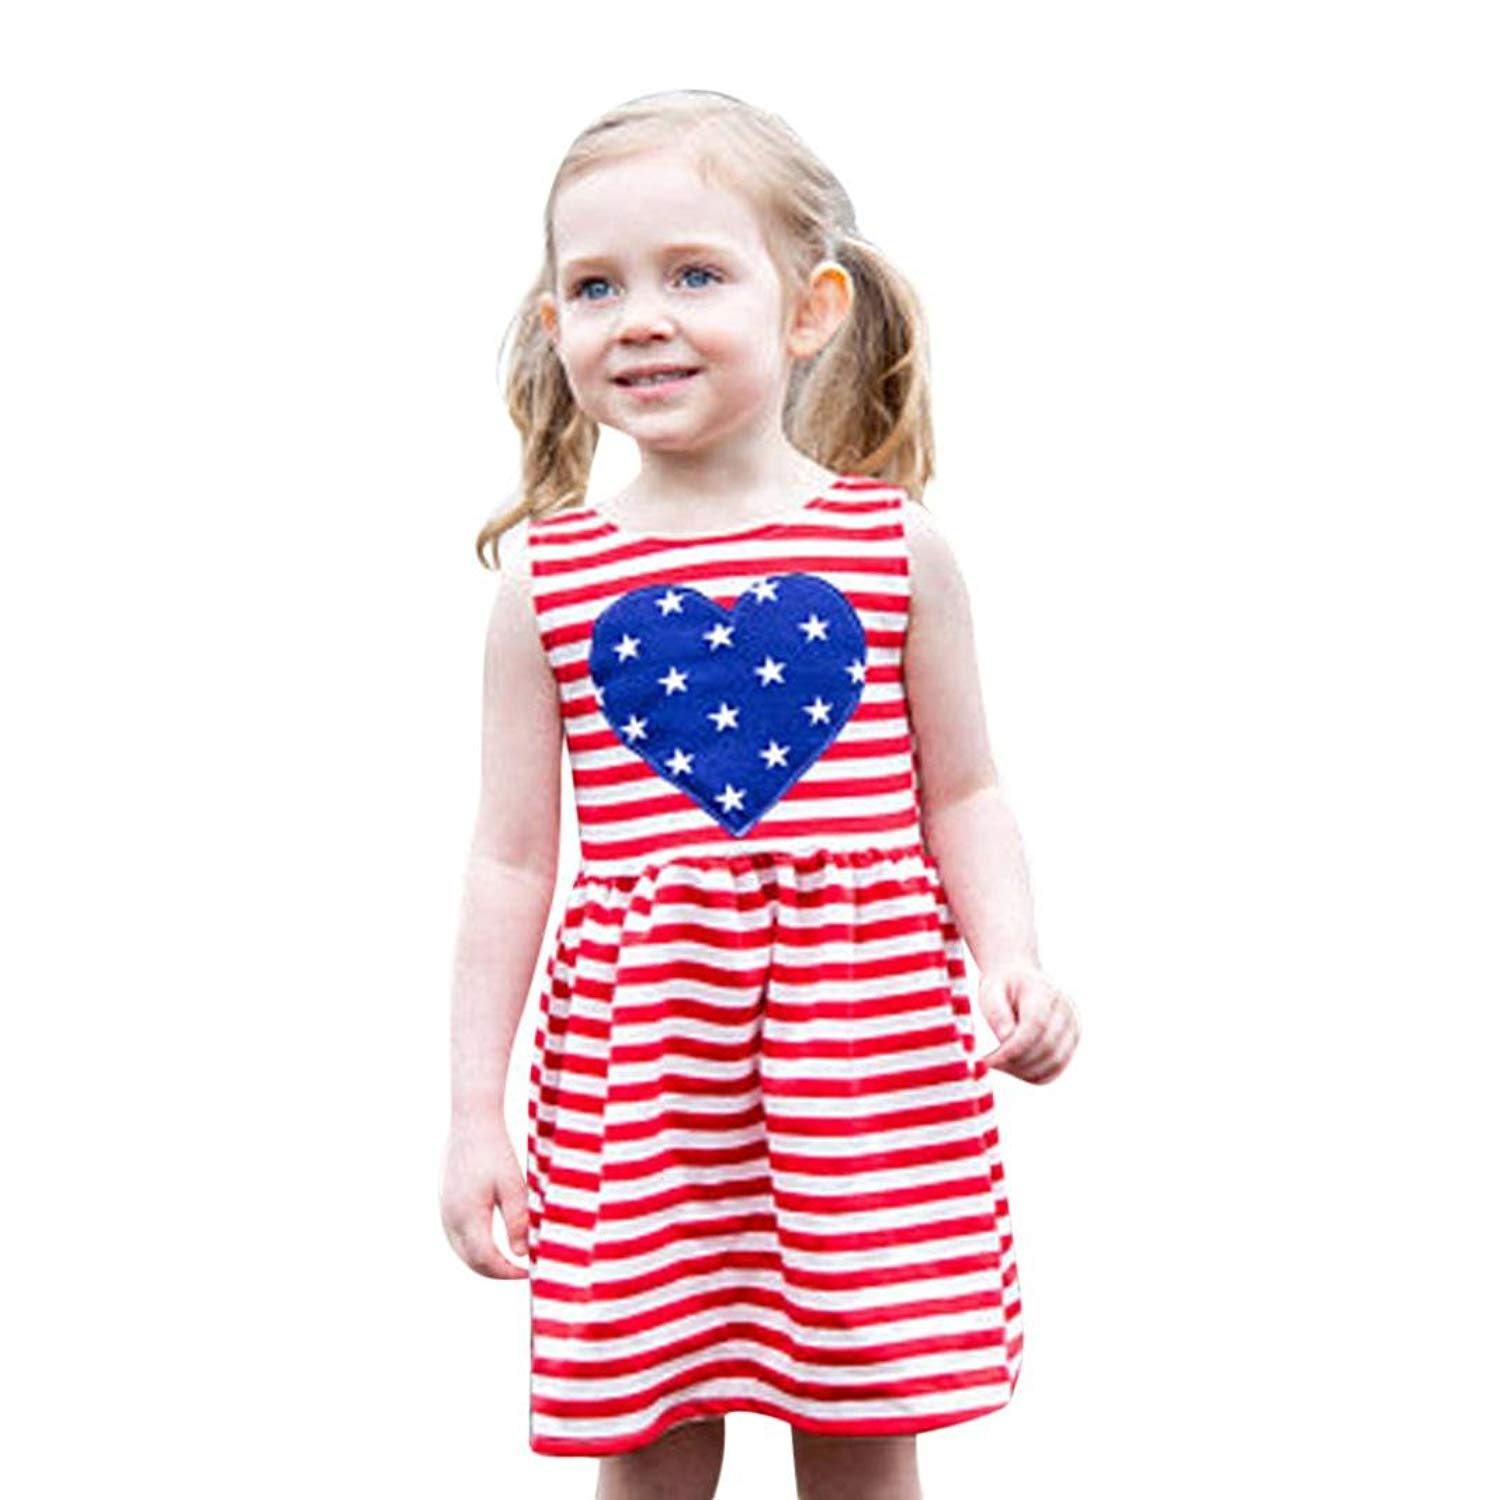 b036f780fad84 Get Quotations · Ourhomer Baby Girls Dresses Toddler Summer Infant Kids 4th  of July Star Dress Clothes Sundress Casual